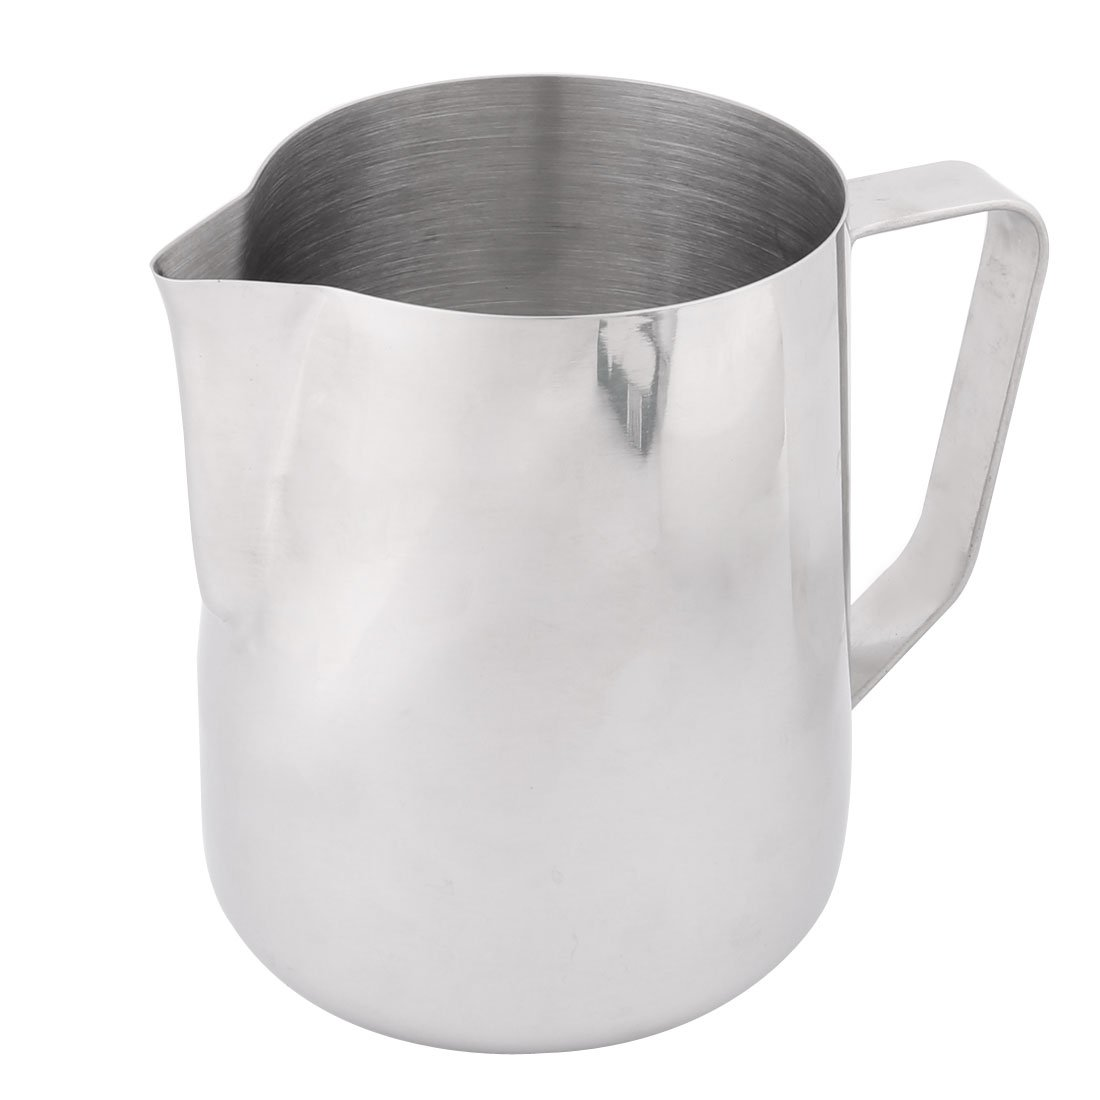 uxcell Metal Household Cafe Milk Tea Coffee Pouring Kettle Pot Container 1000ml Silver Tone a16122200ux0521